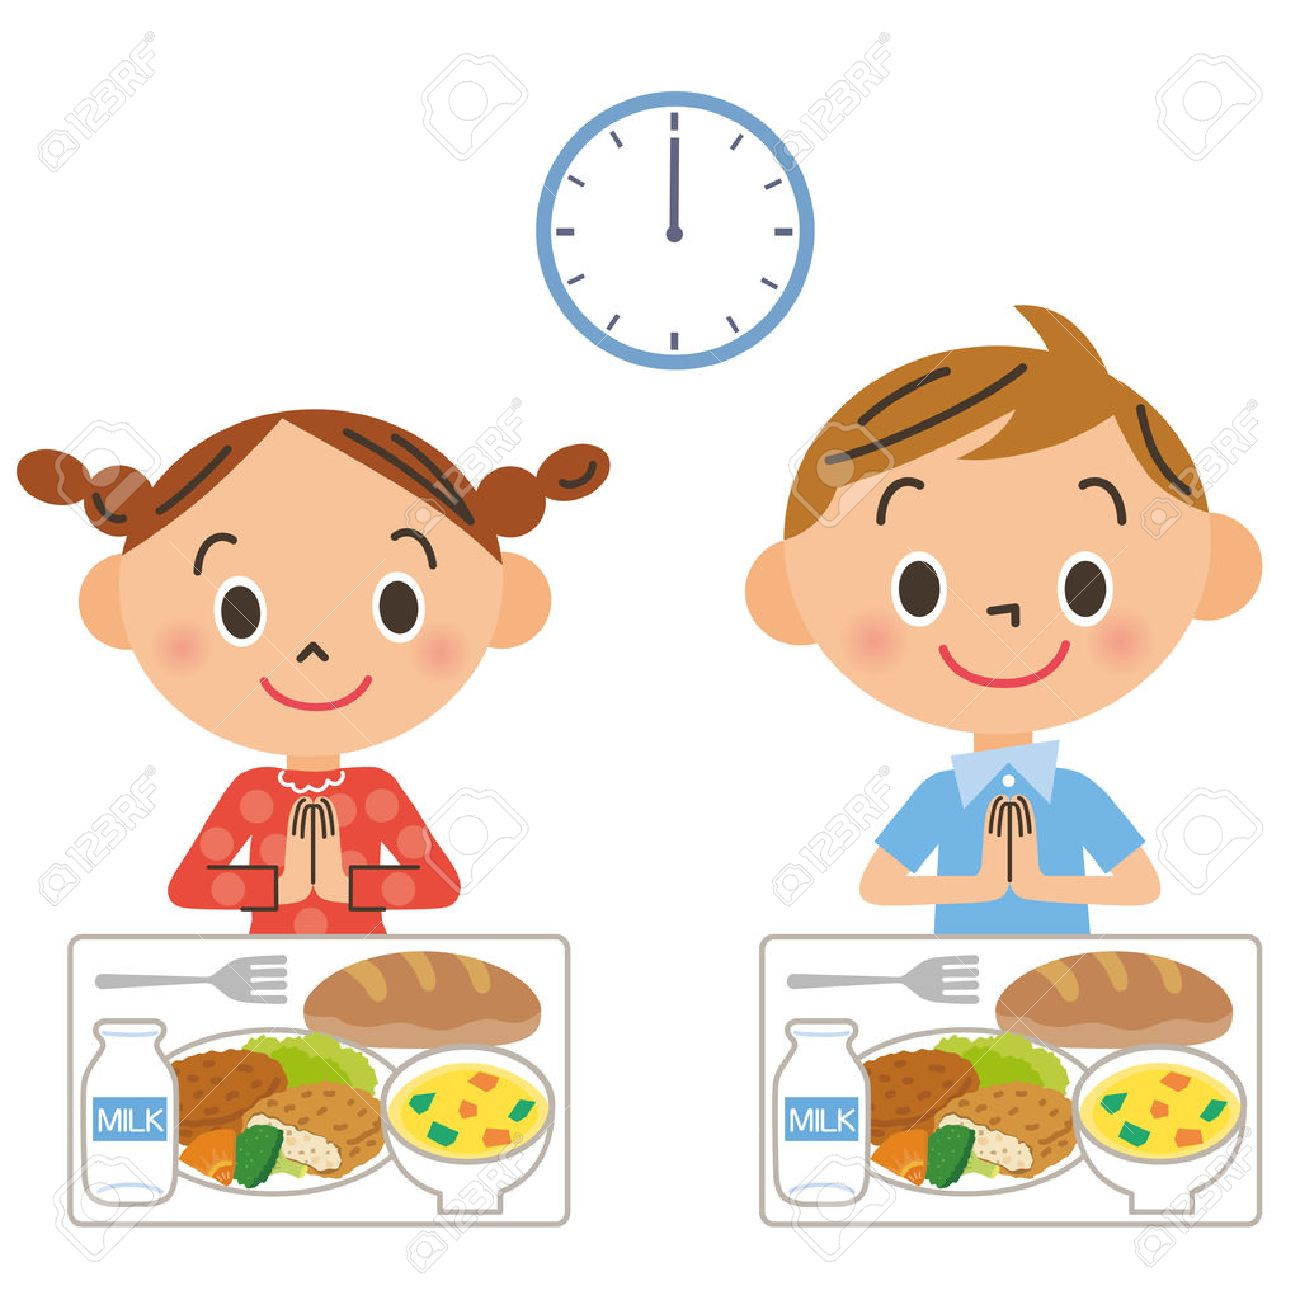 the child who eats lunch royalty free cliparts, vectors, and stock